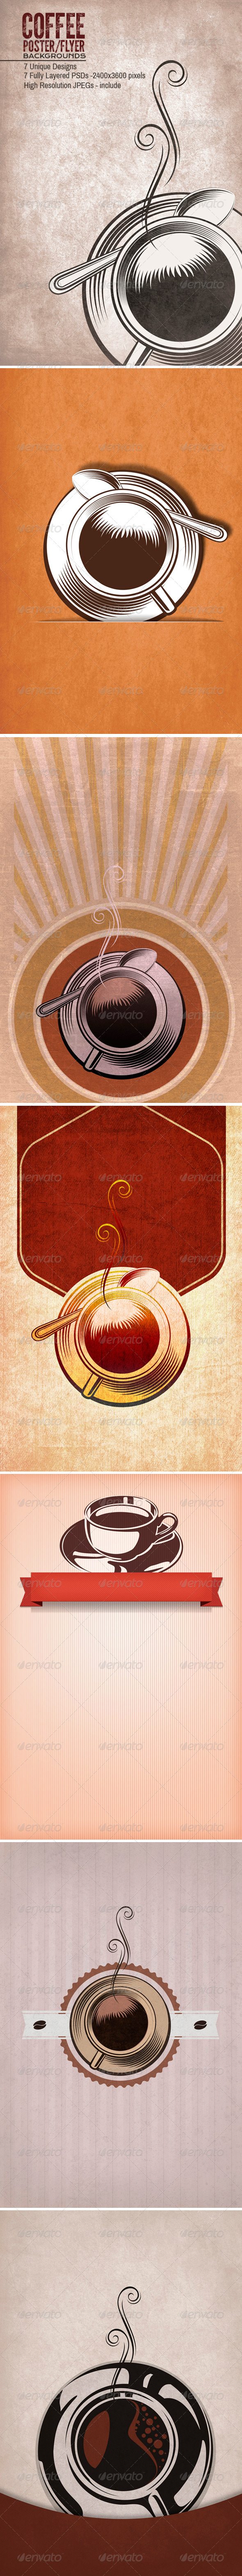 GraphicRiver Coffee Tea Poster Flyers Backgrounds 4960899